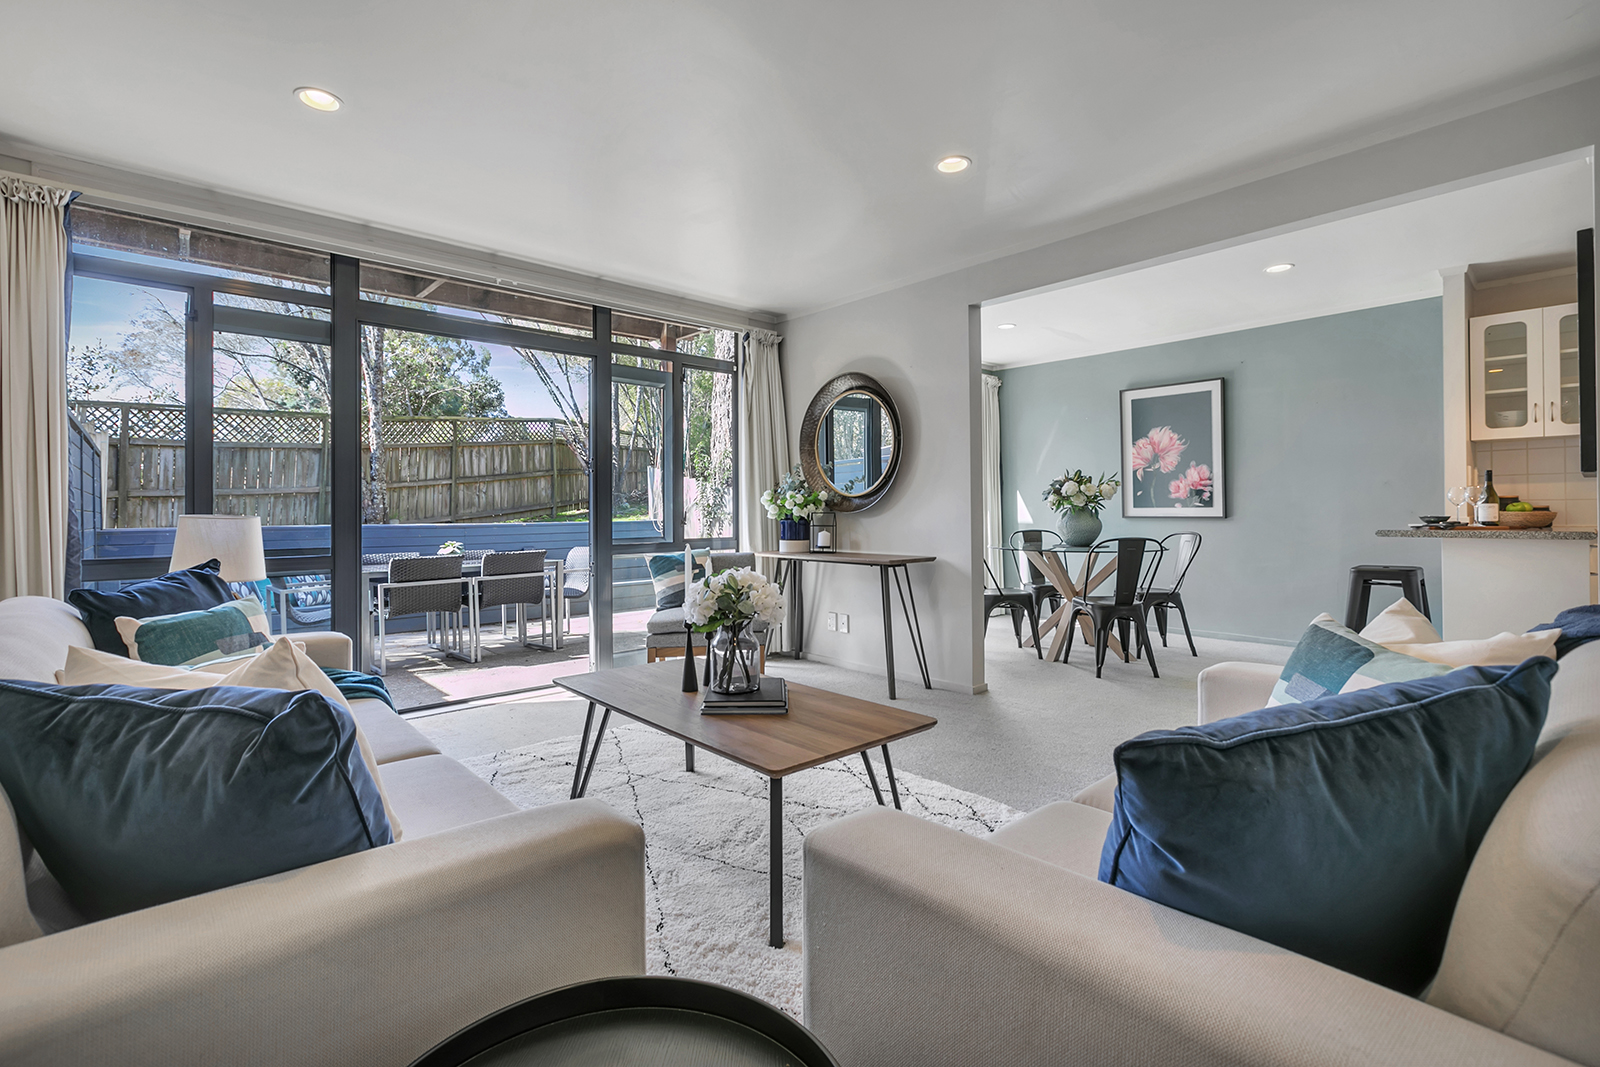 51031Open home times